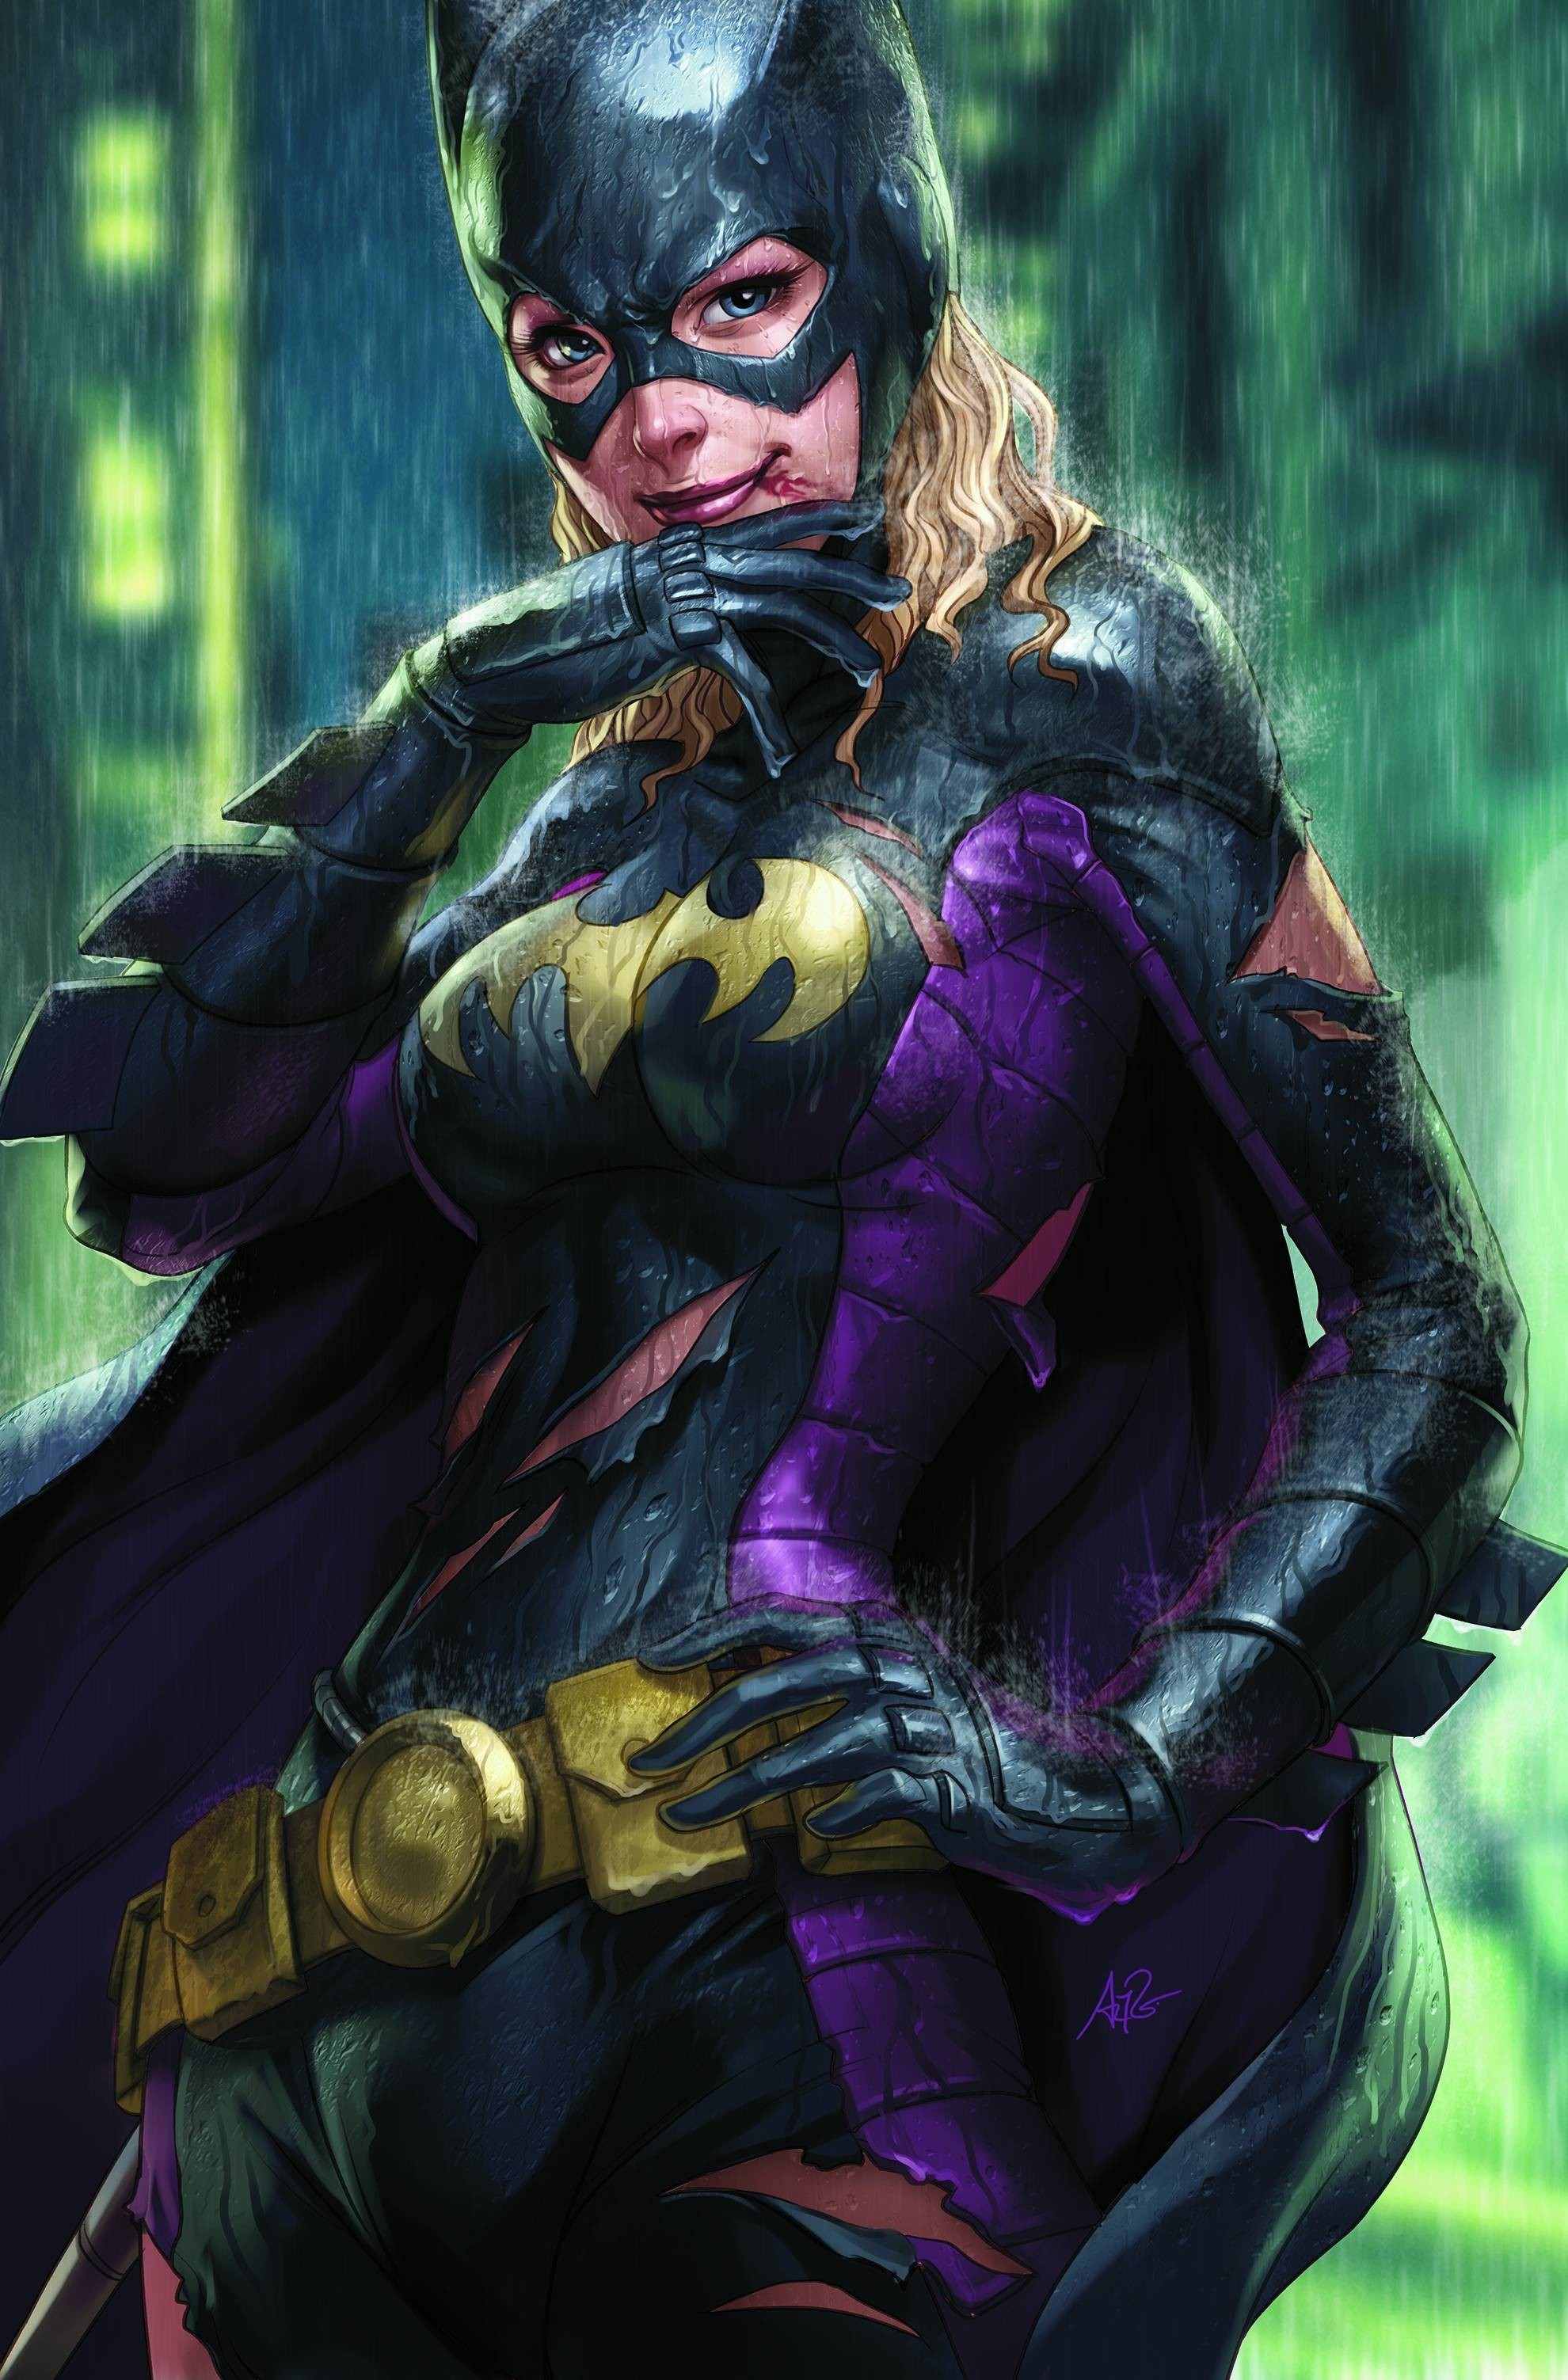 dc comics superheroes Batgirl HD Wallpaper